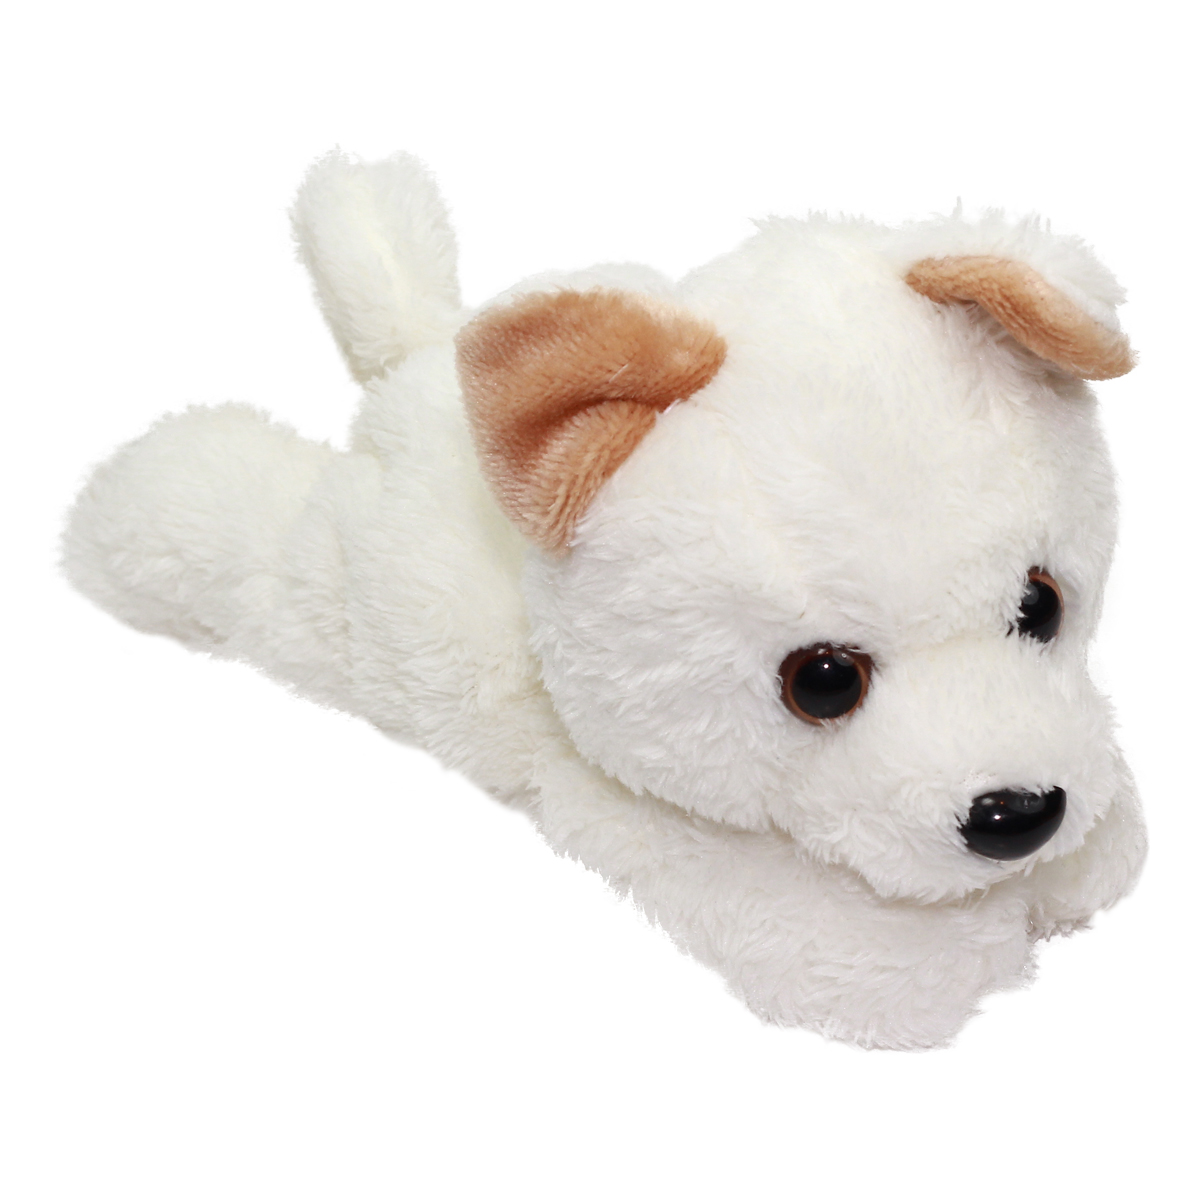 Kawaii Friends Dog Collection White Plush 9 Inches